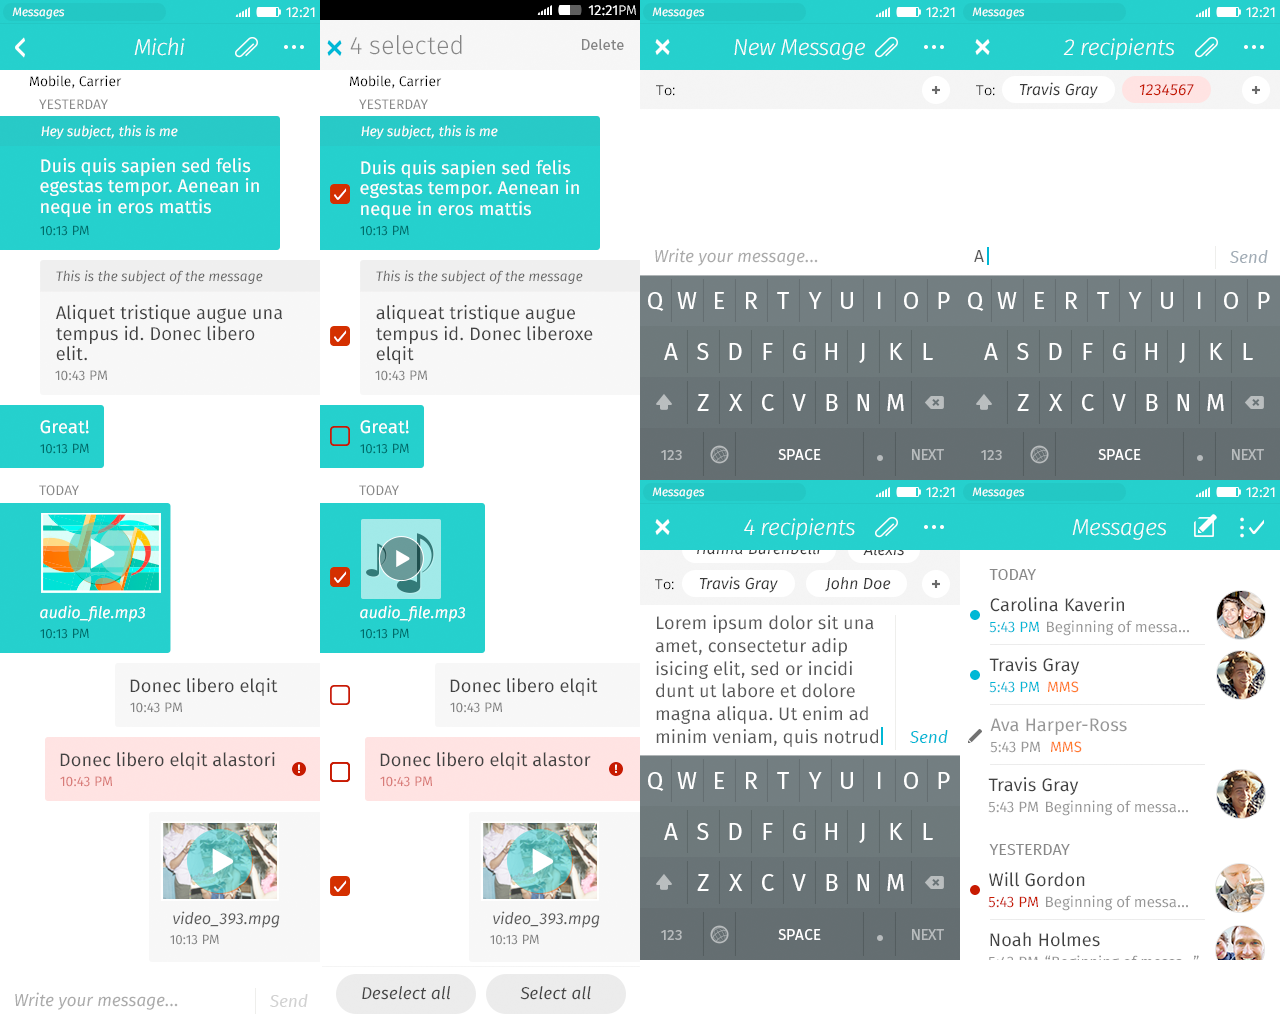 firefoxos - An application to send messages and make conversations